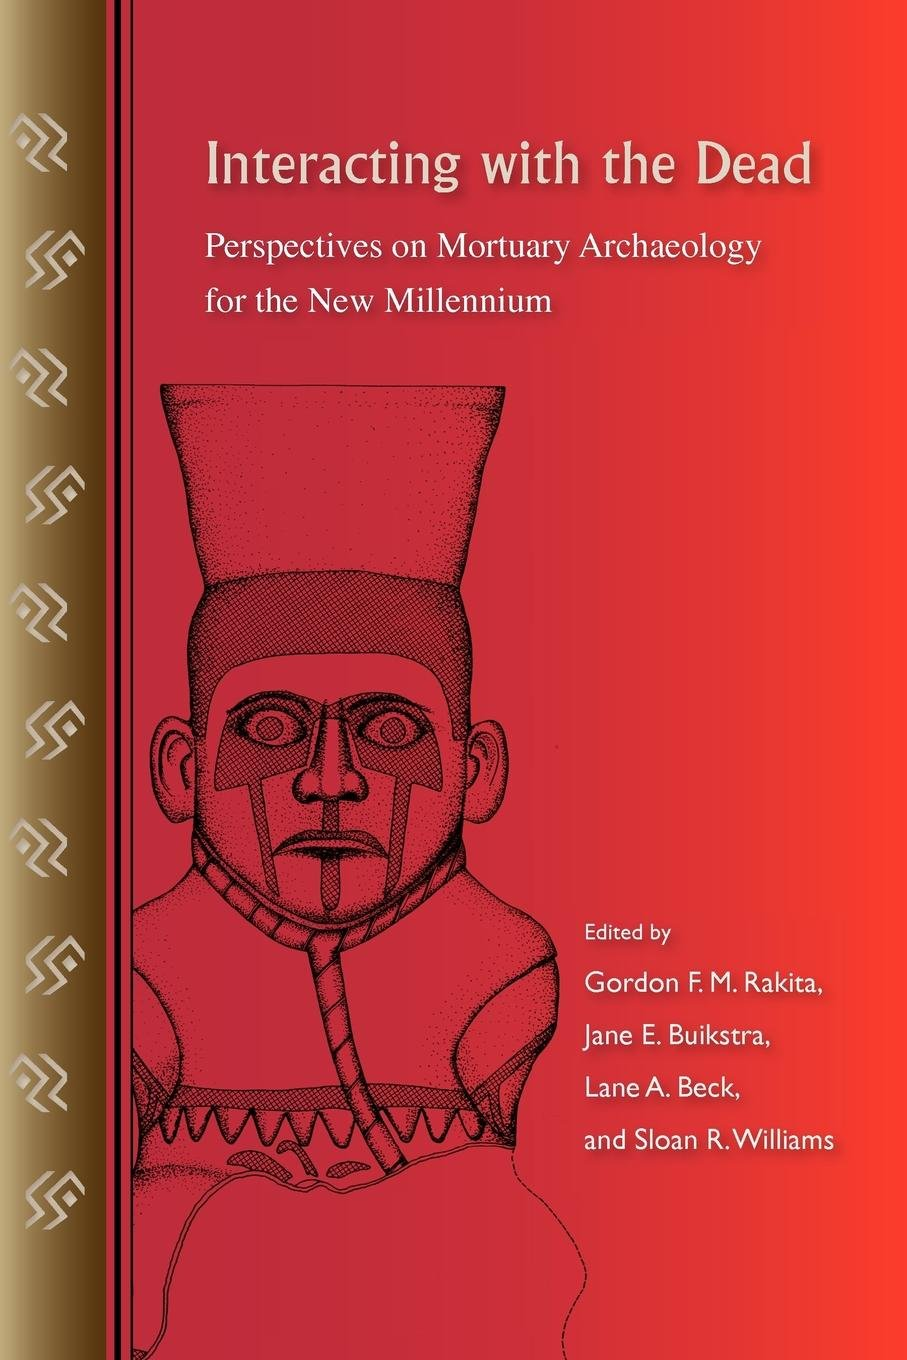 Download Interacting with the Dead: Perspectives on Mortuary Archaeology for the New Millennium PDF